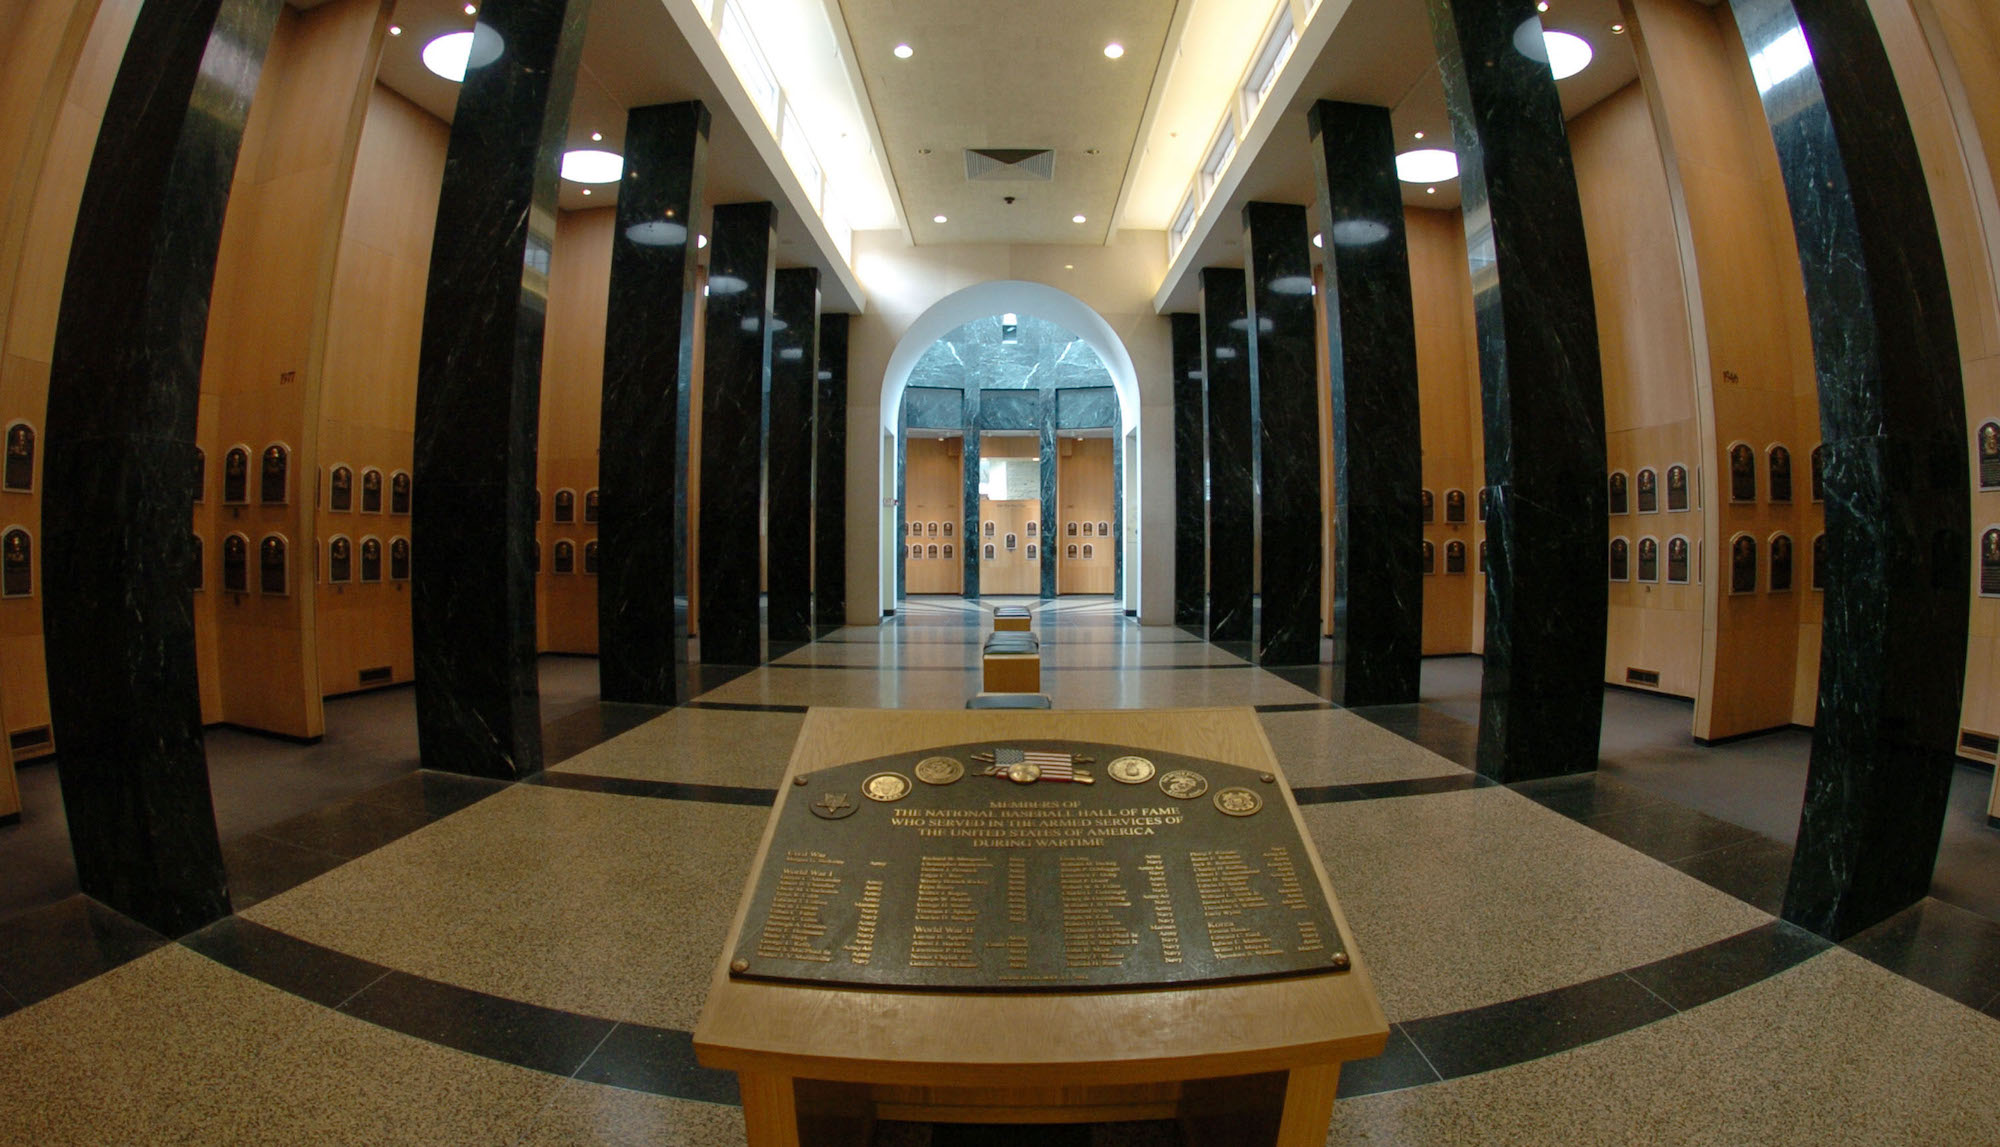 Plaques in the main hallway identify inductee classes in the Baseball Hall of Fame and Museum July 25, 2004 in Cooperstown, New York. (Photo by A. Messerschmidt/Getty Images) *** Local Caption ***